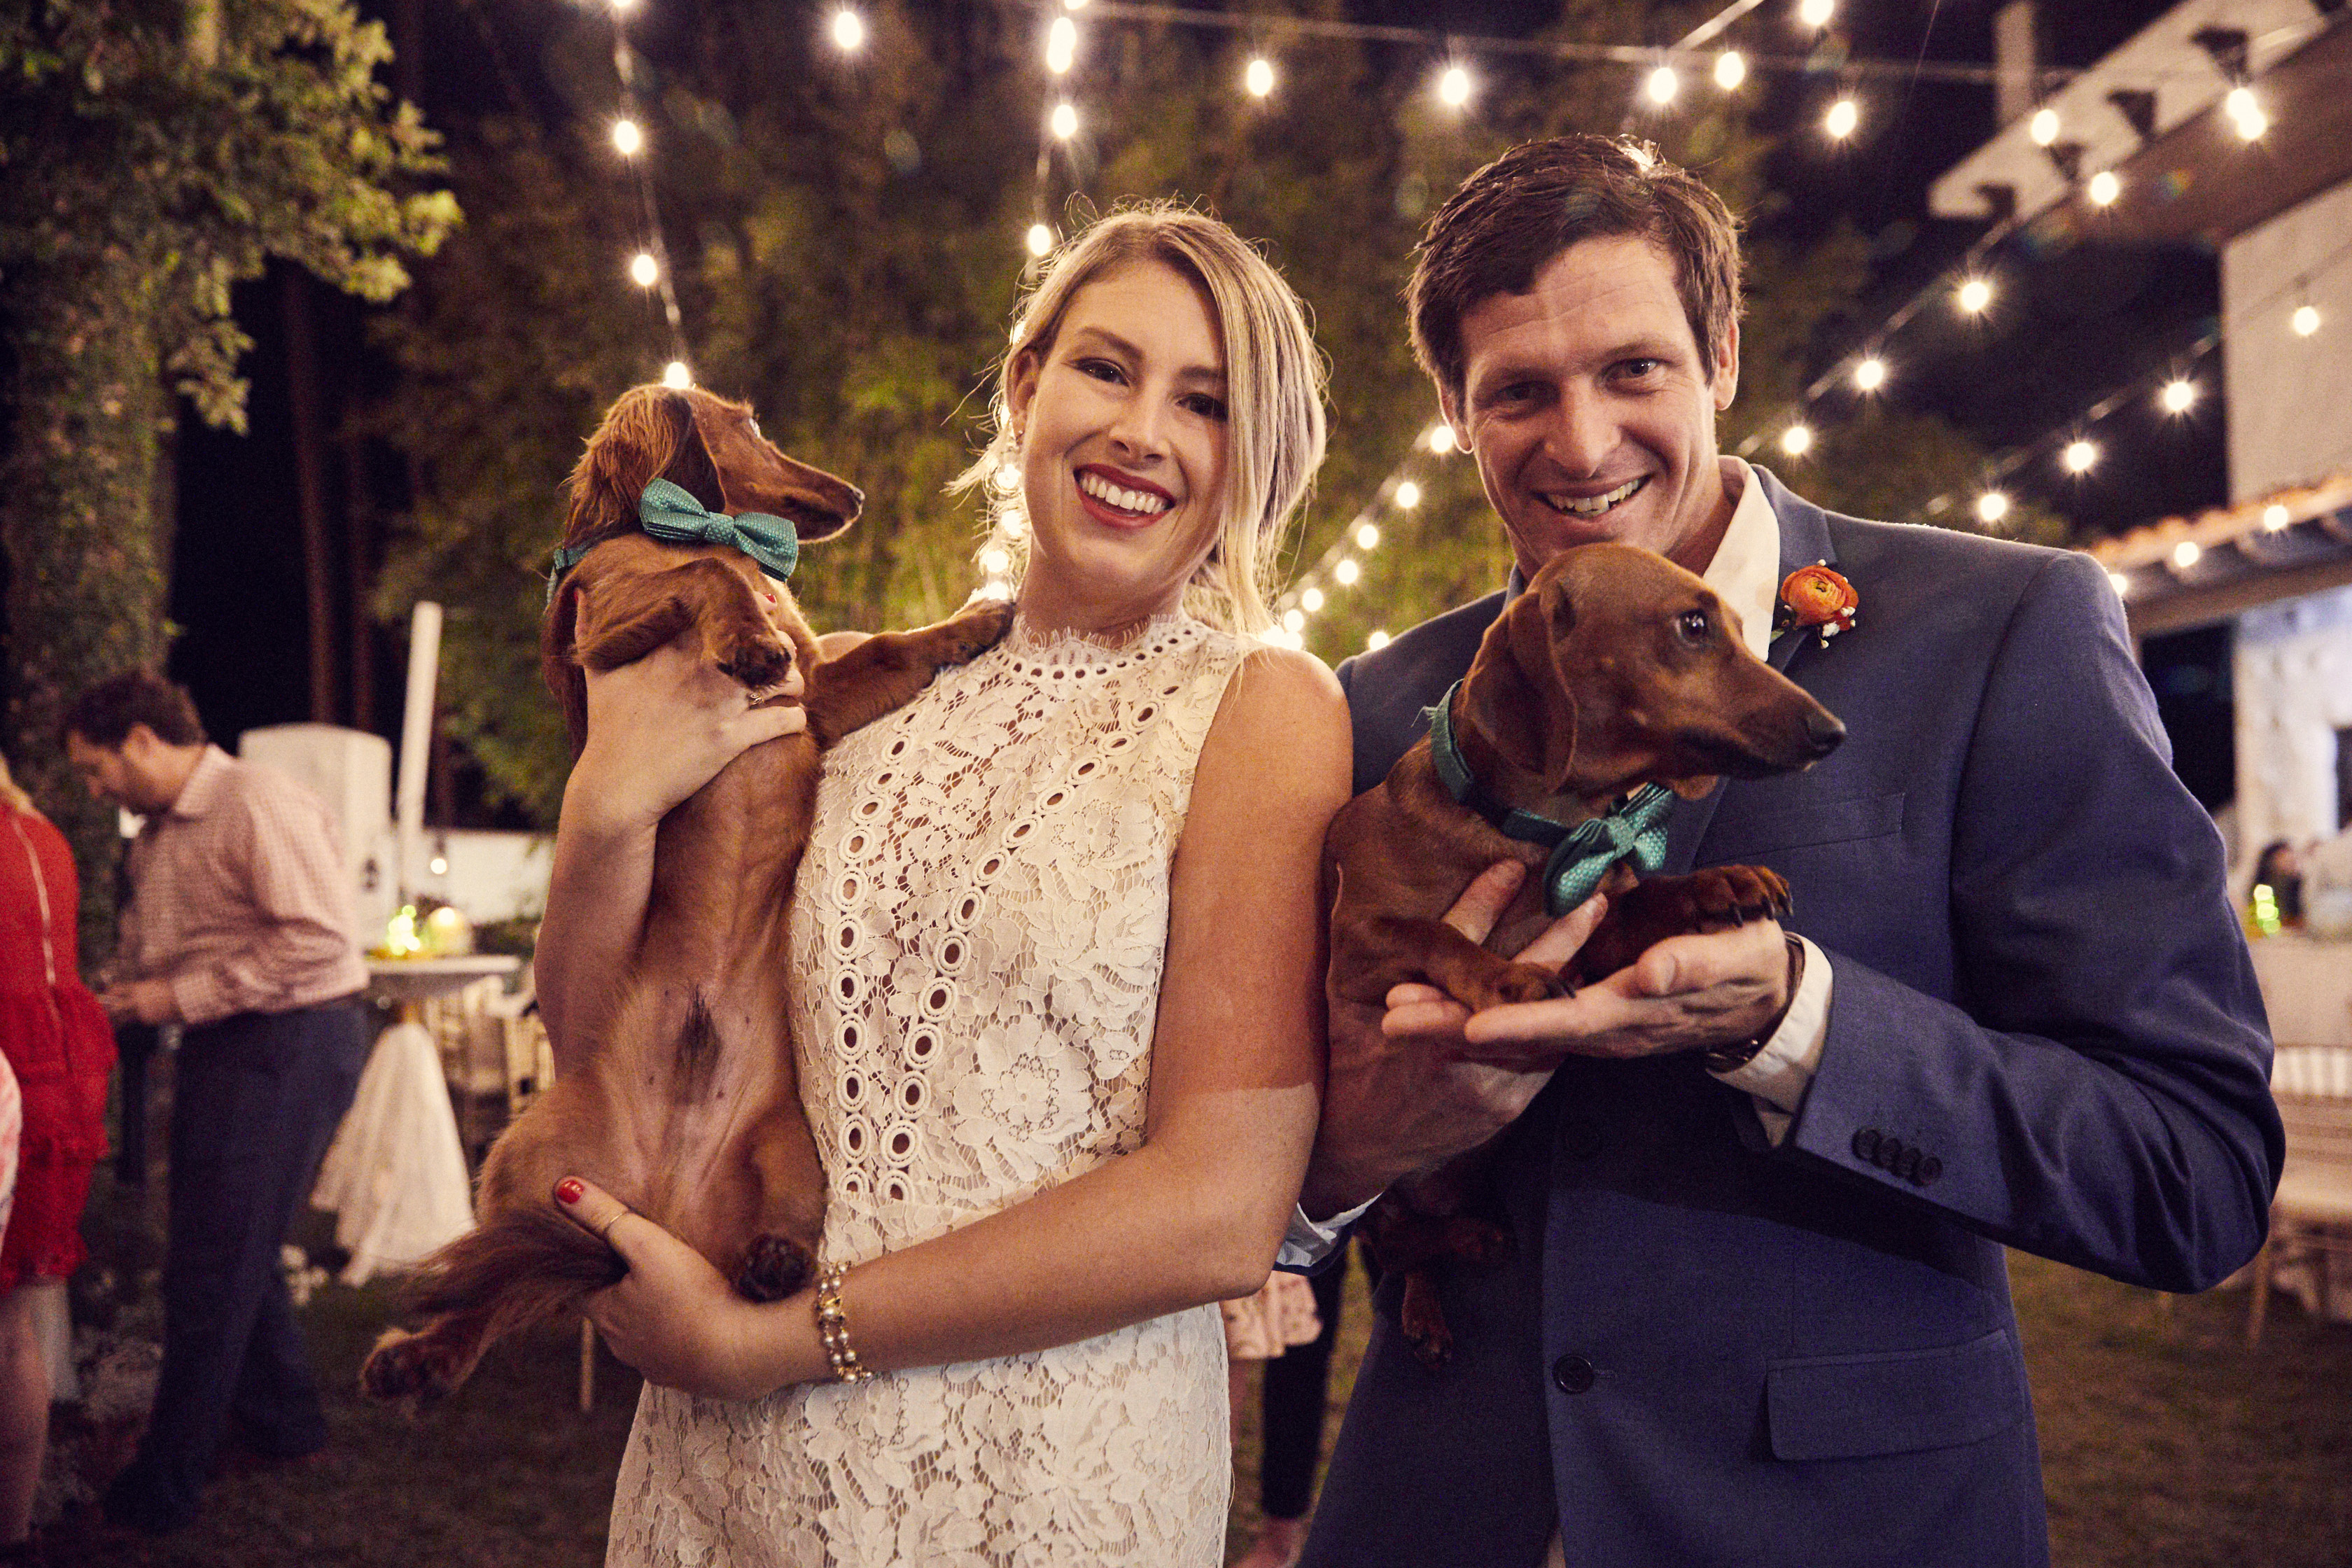 @grilledcheesesocial's cover photo for 'MacKenzie Smith and Jeremy Johnston's Surprise Wedding'